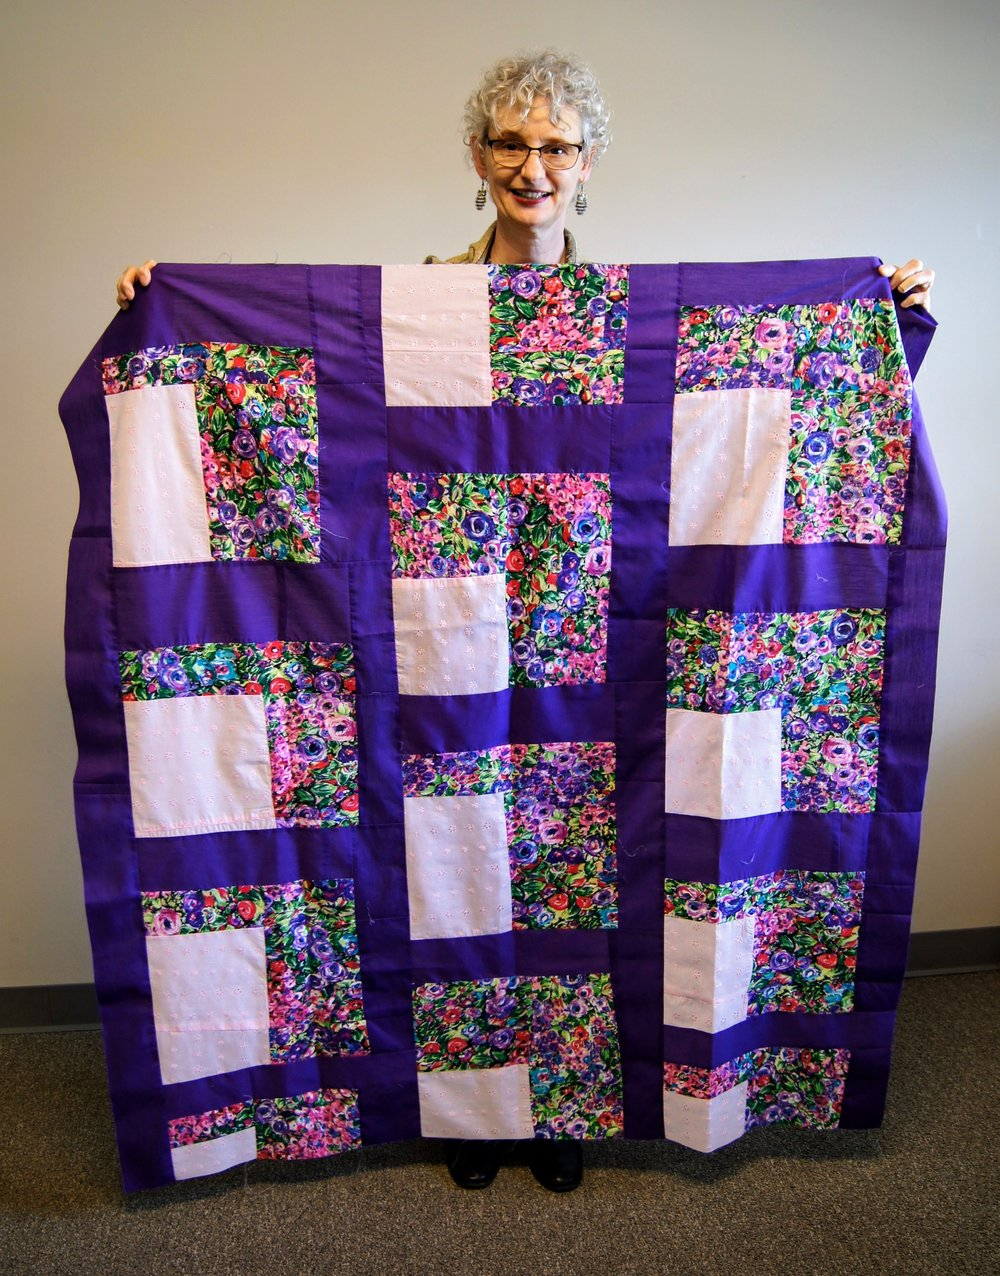 Denise Ohlman re-pieced an old quilt with non-traditional fabrics.